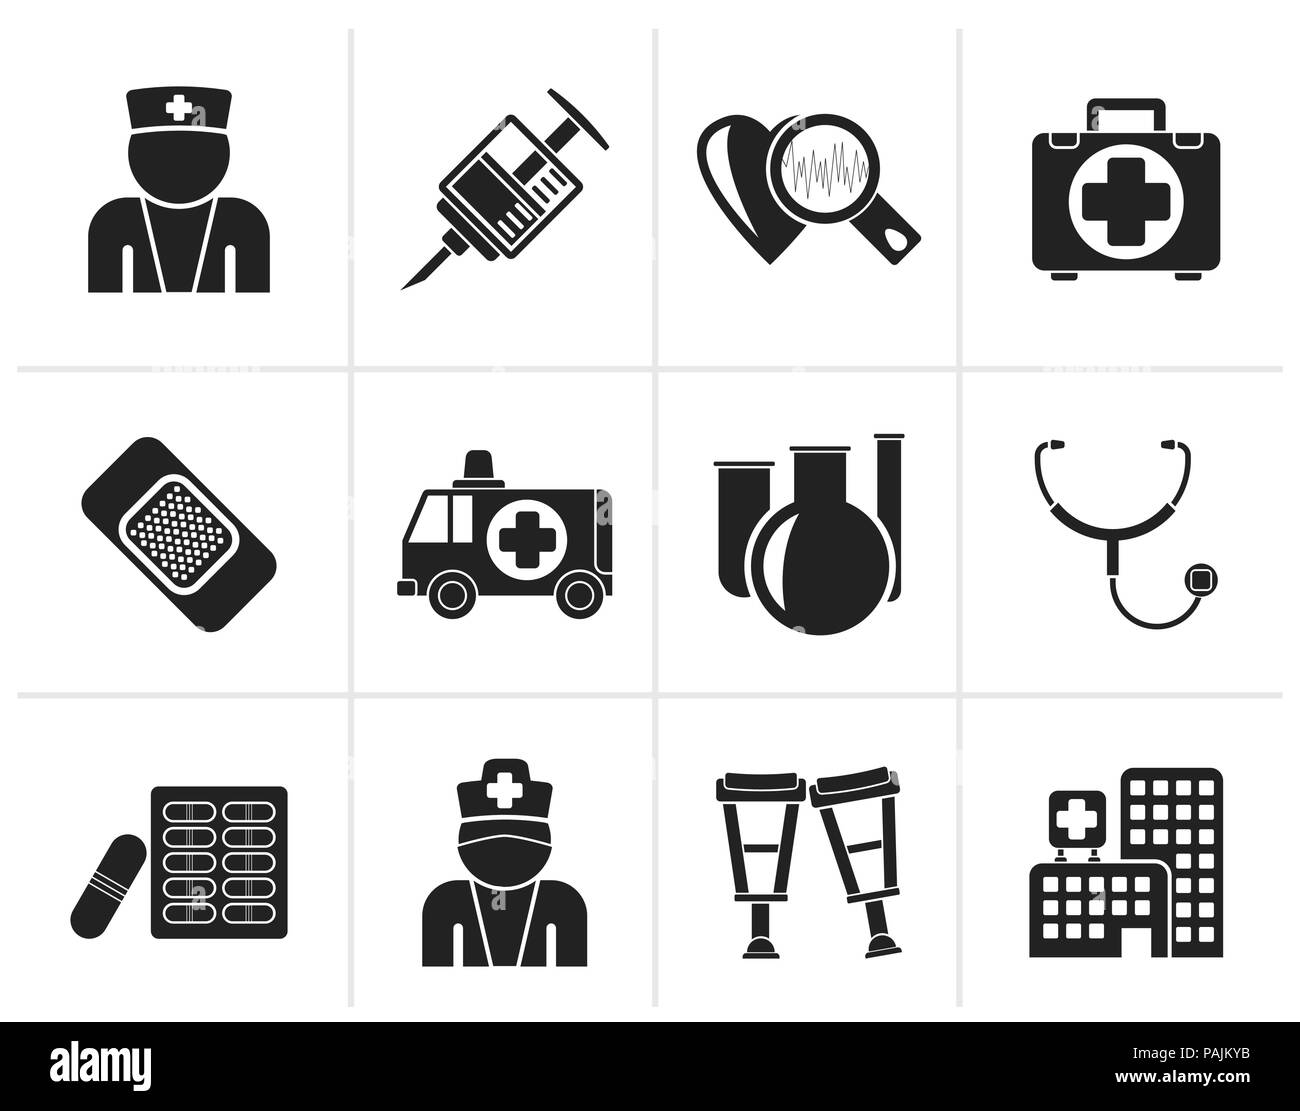 Black Medicine and healthcare icons - vector icon set - Stock Image